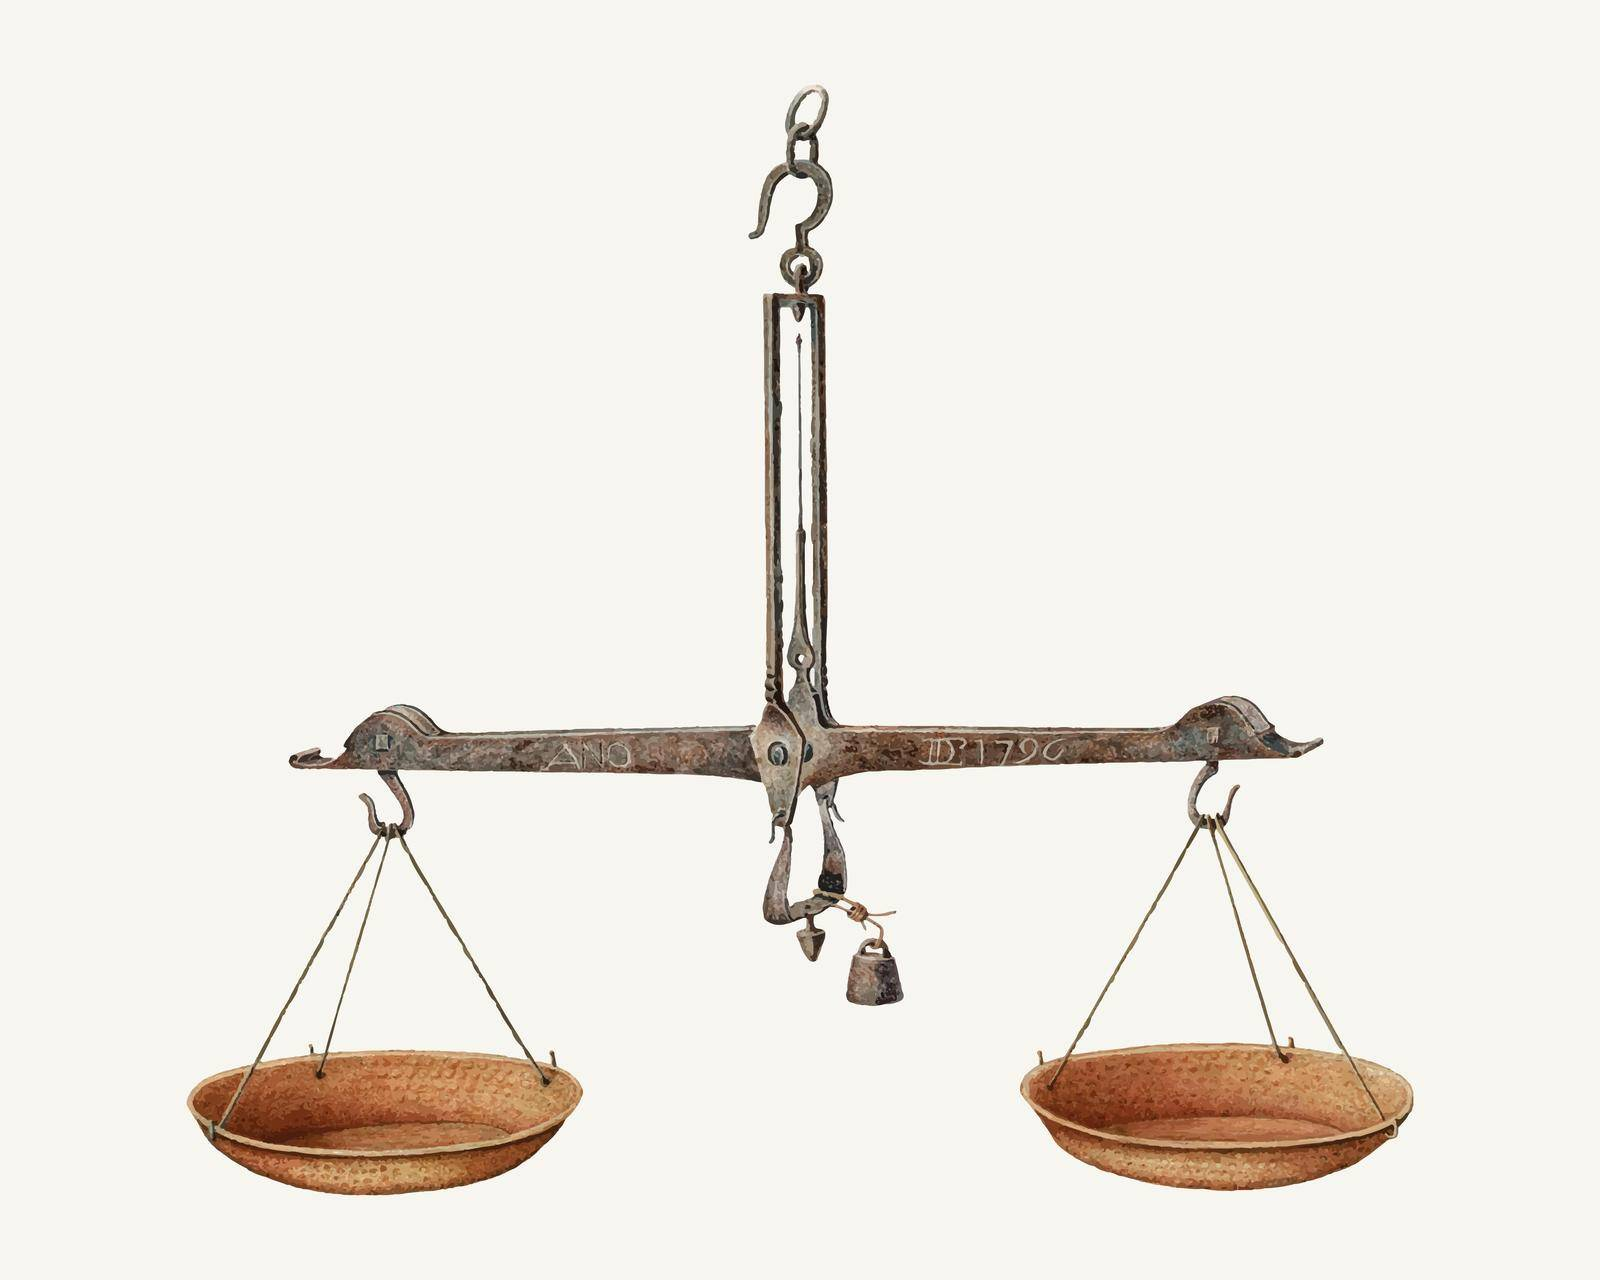 Vintage balance scales illustration vector, remixed from the artwork by William Kieckhofel